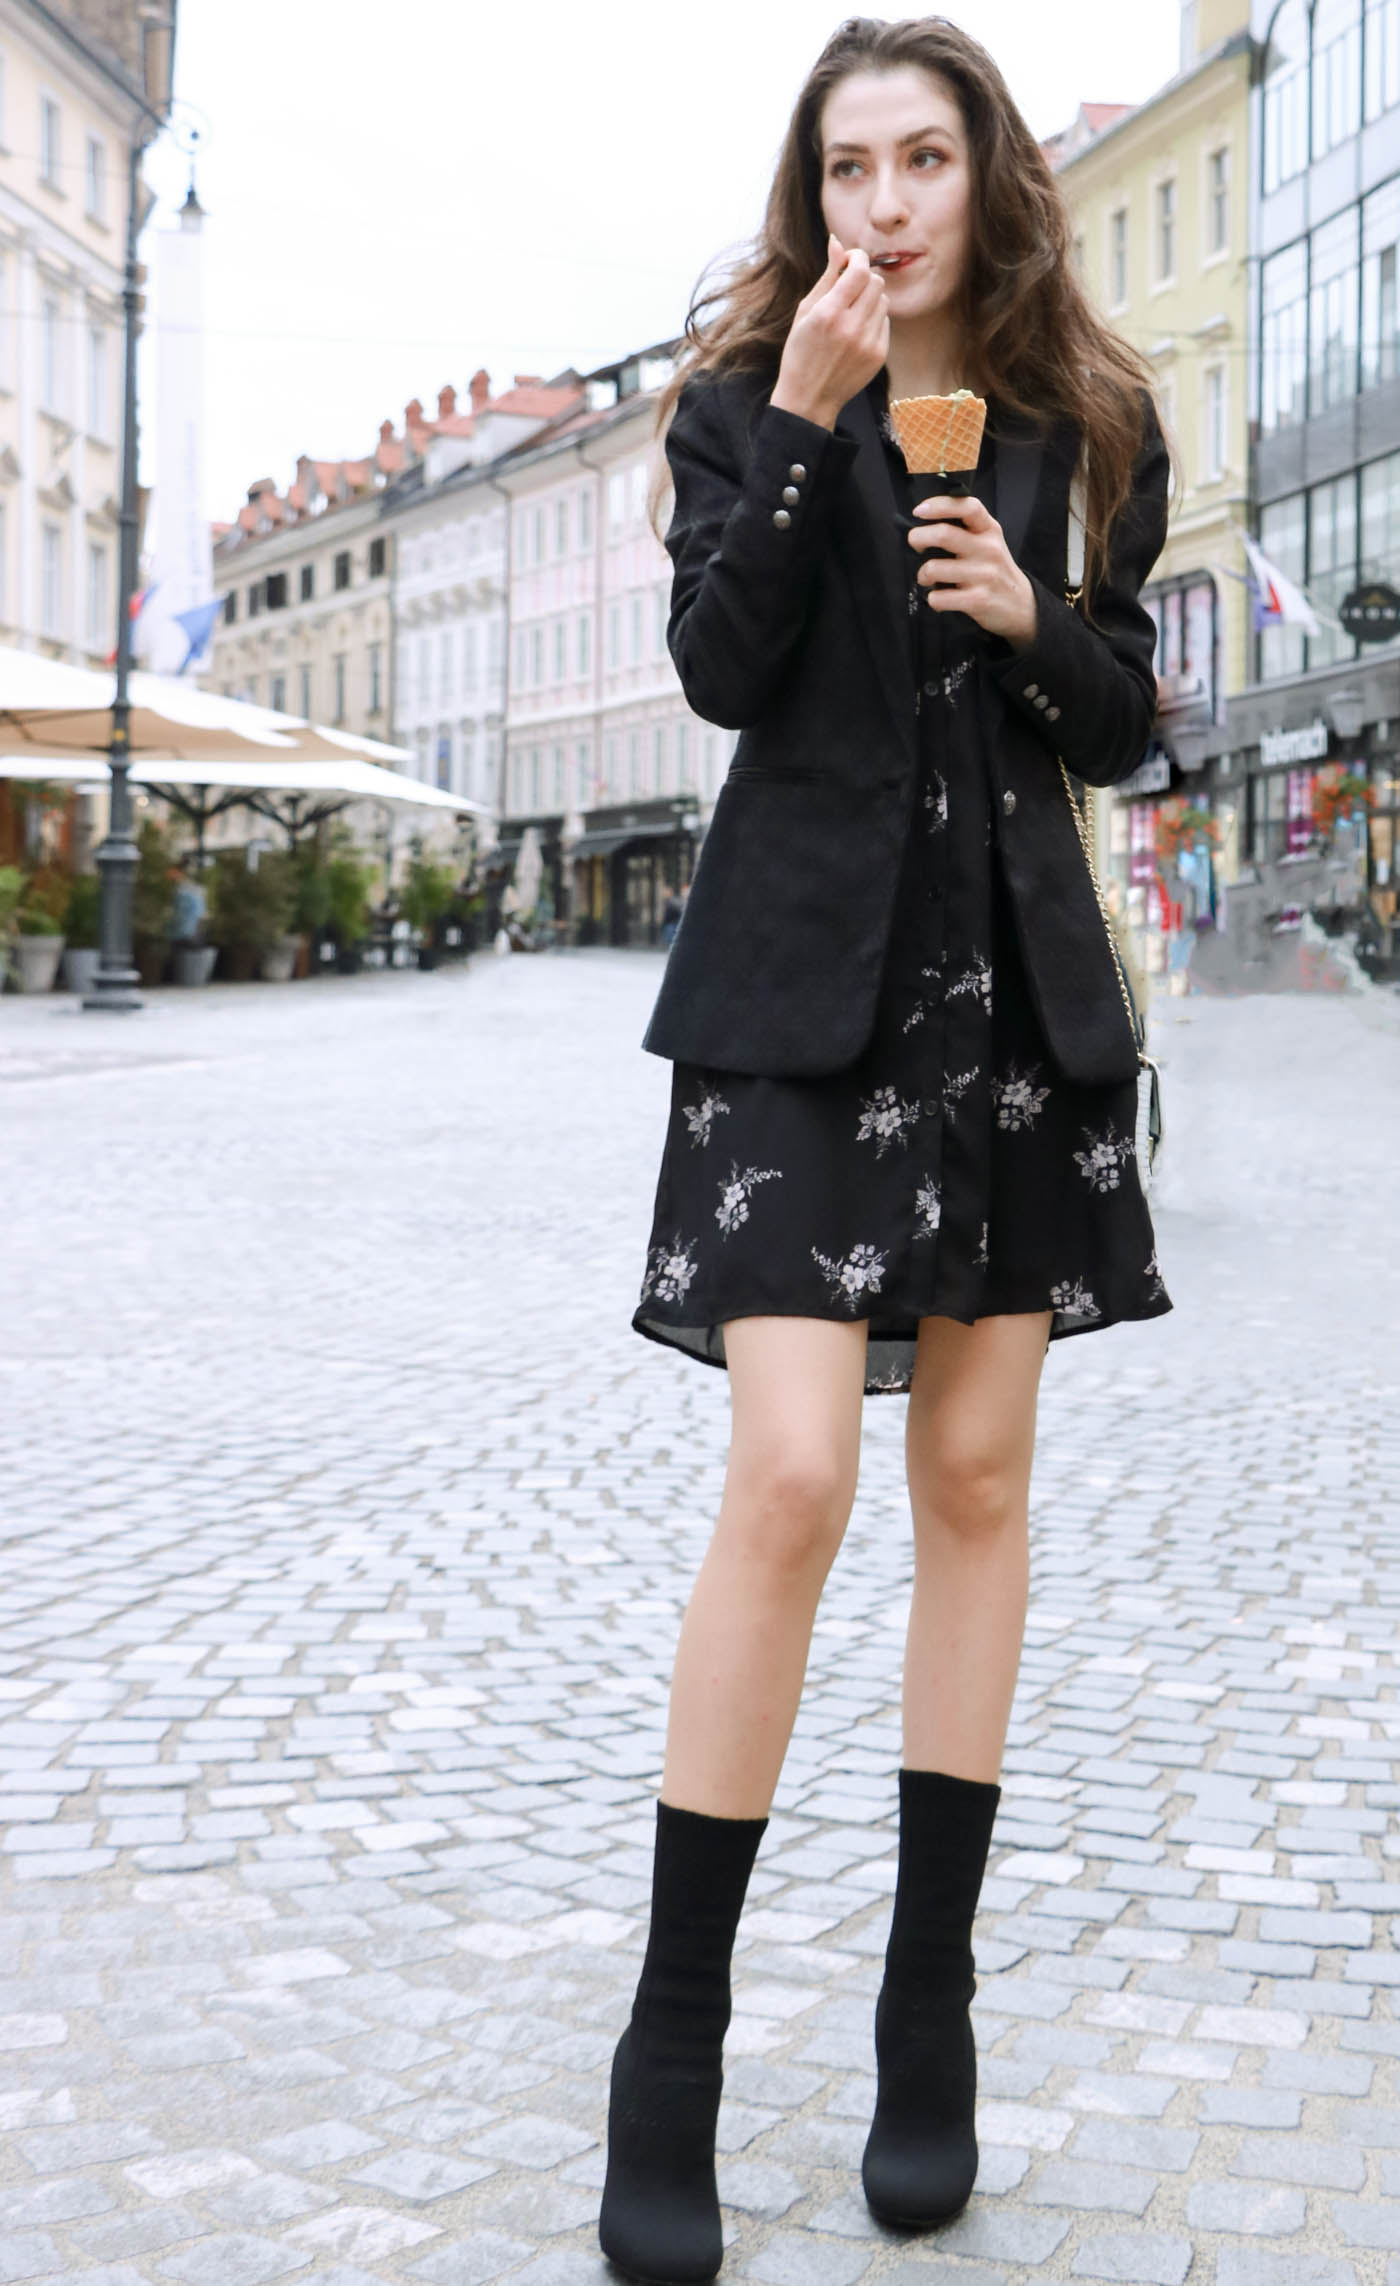 Fashion Blogger Veronika Lipar of Brunette from Wall wearing decadent floral shirt dress, black jacquard boyfriend blazer, black sock booties, white shoulder bag eating ice cream on the street